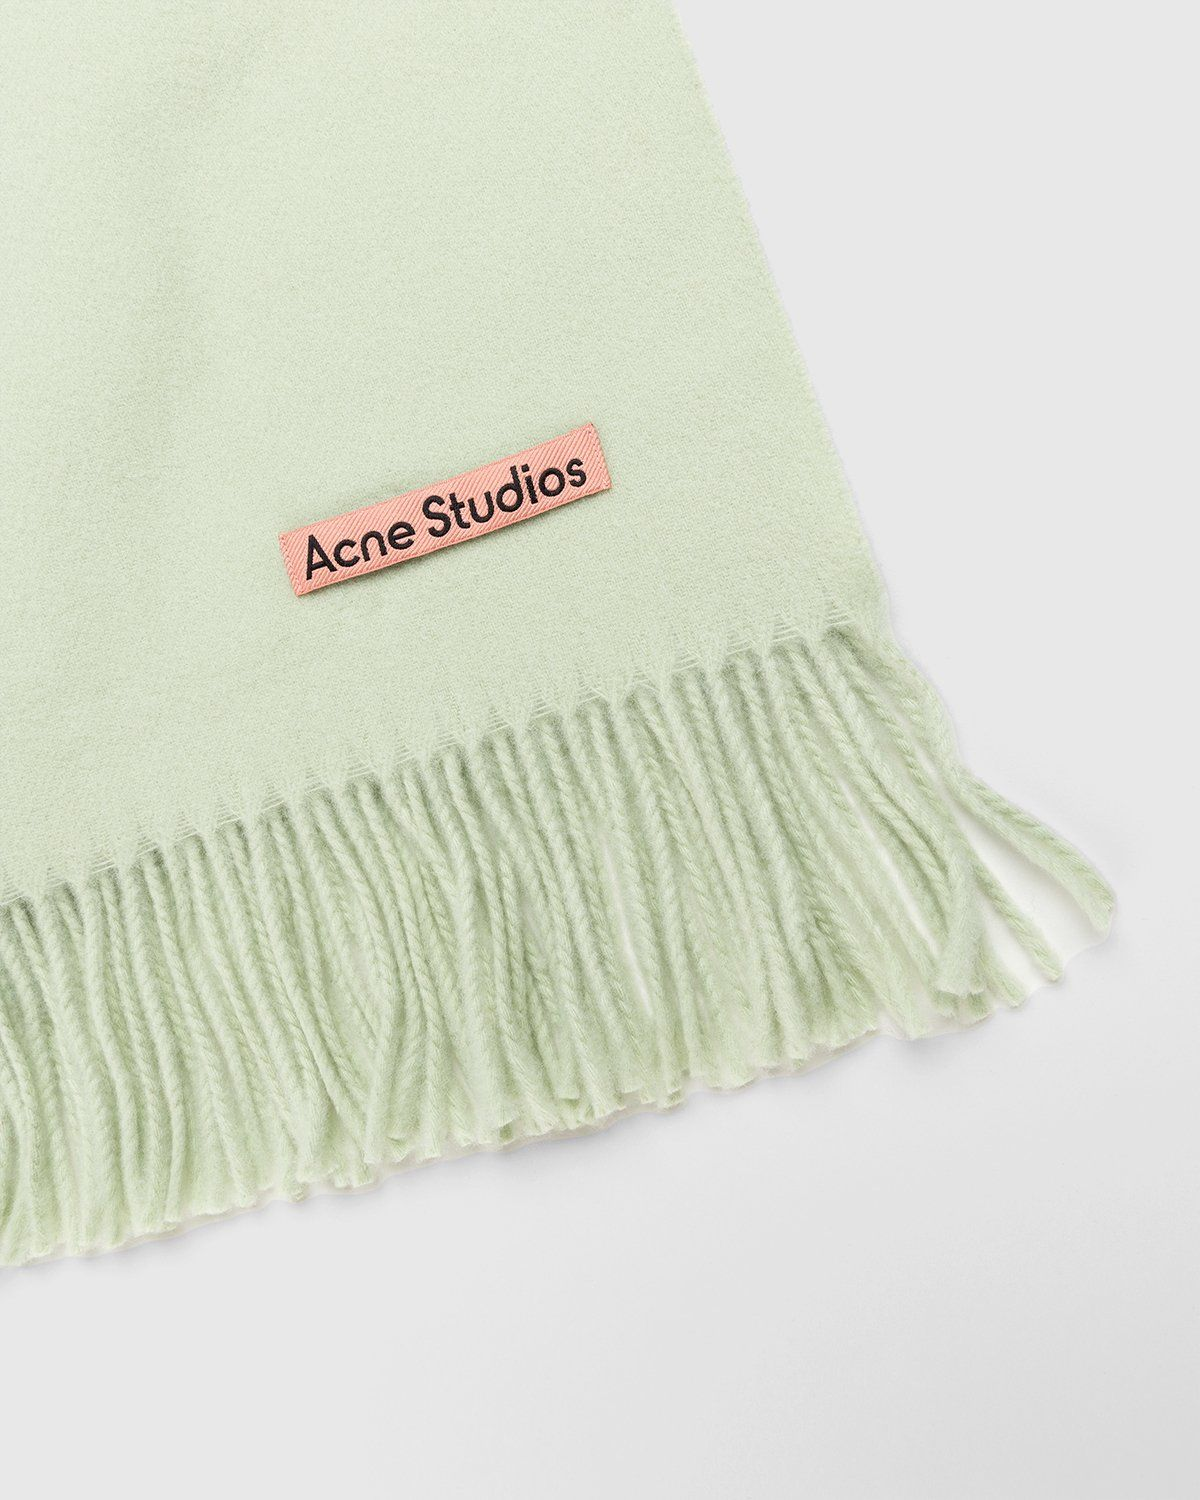 Acne Studios – Canada New Scarf Pale Green - Image 3